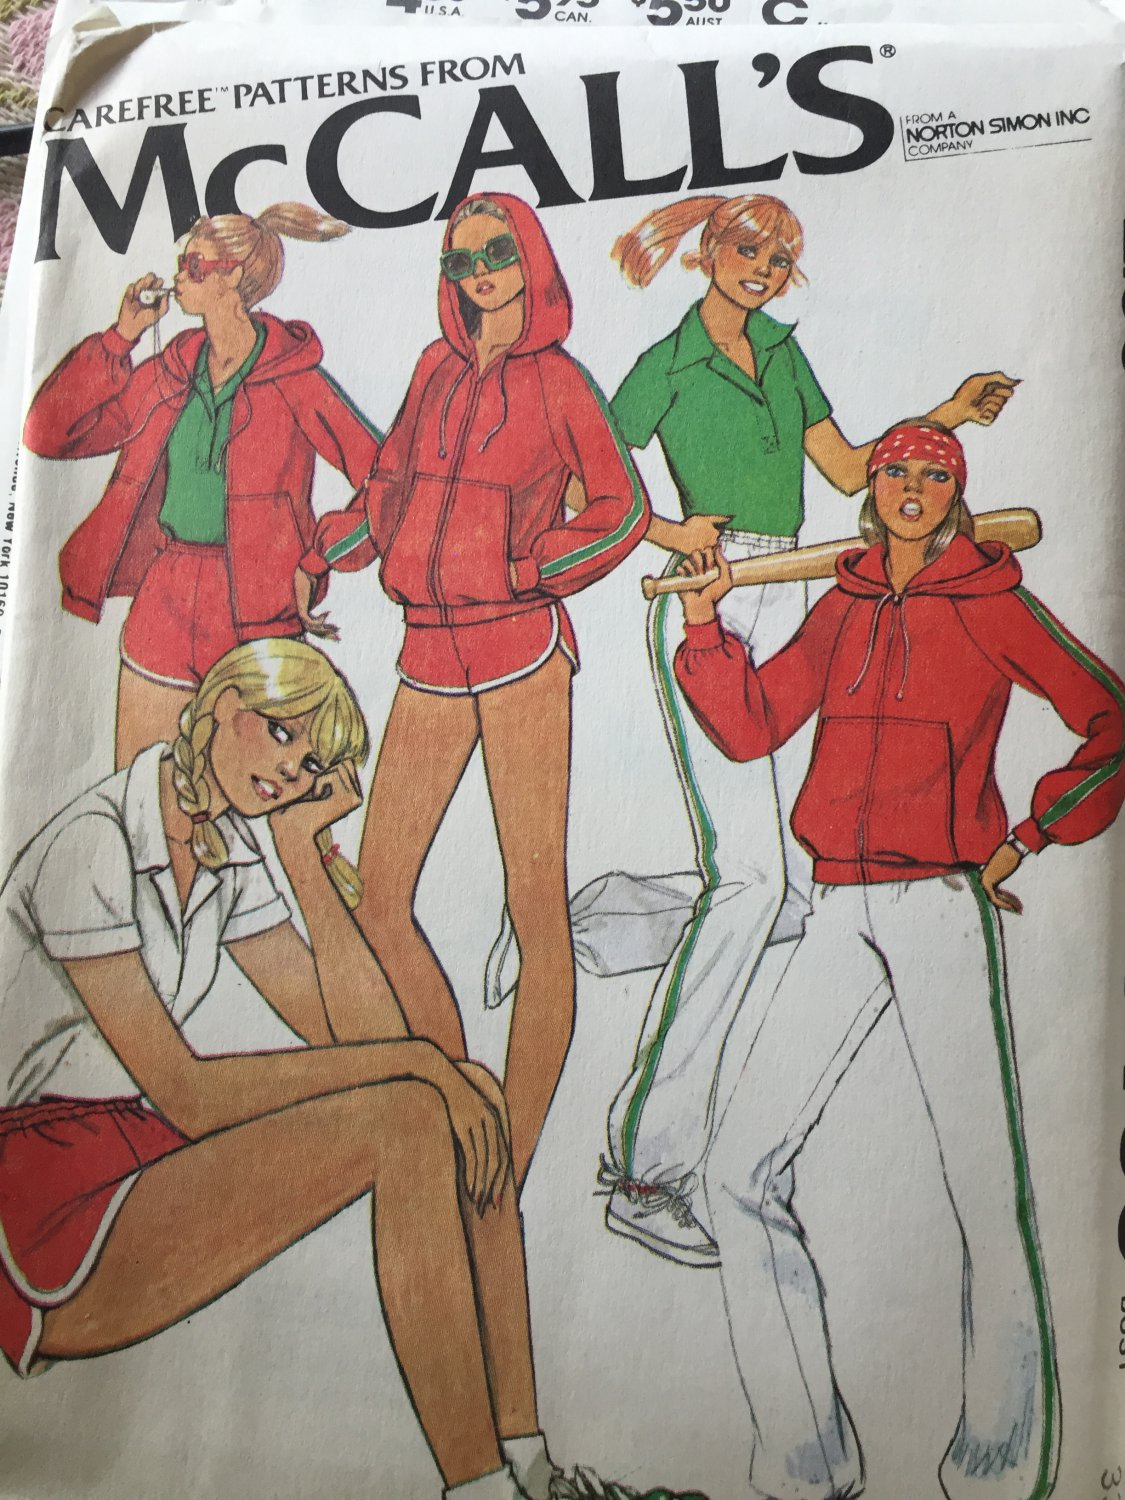 McCalls 6469 Misses Sporty Hoodie Zip Jacket Top Pants Shorts Pattern for Knits Size 10 Bust 32 1/2'